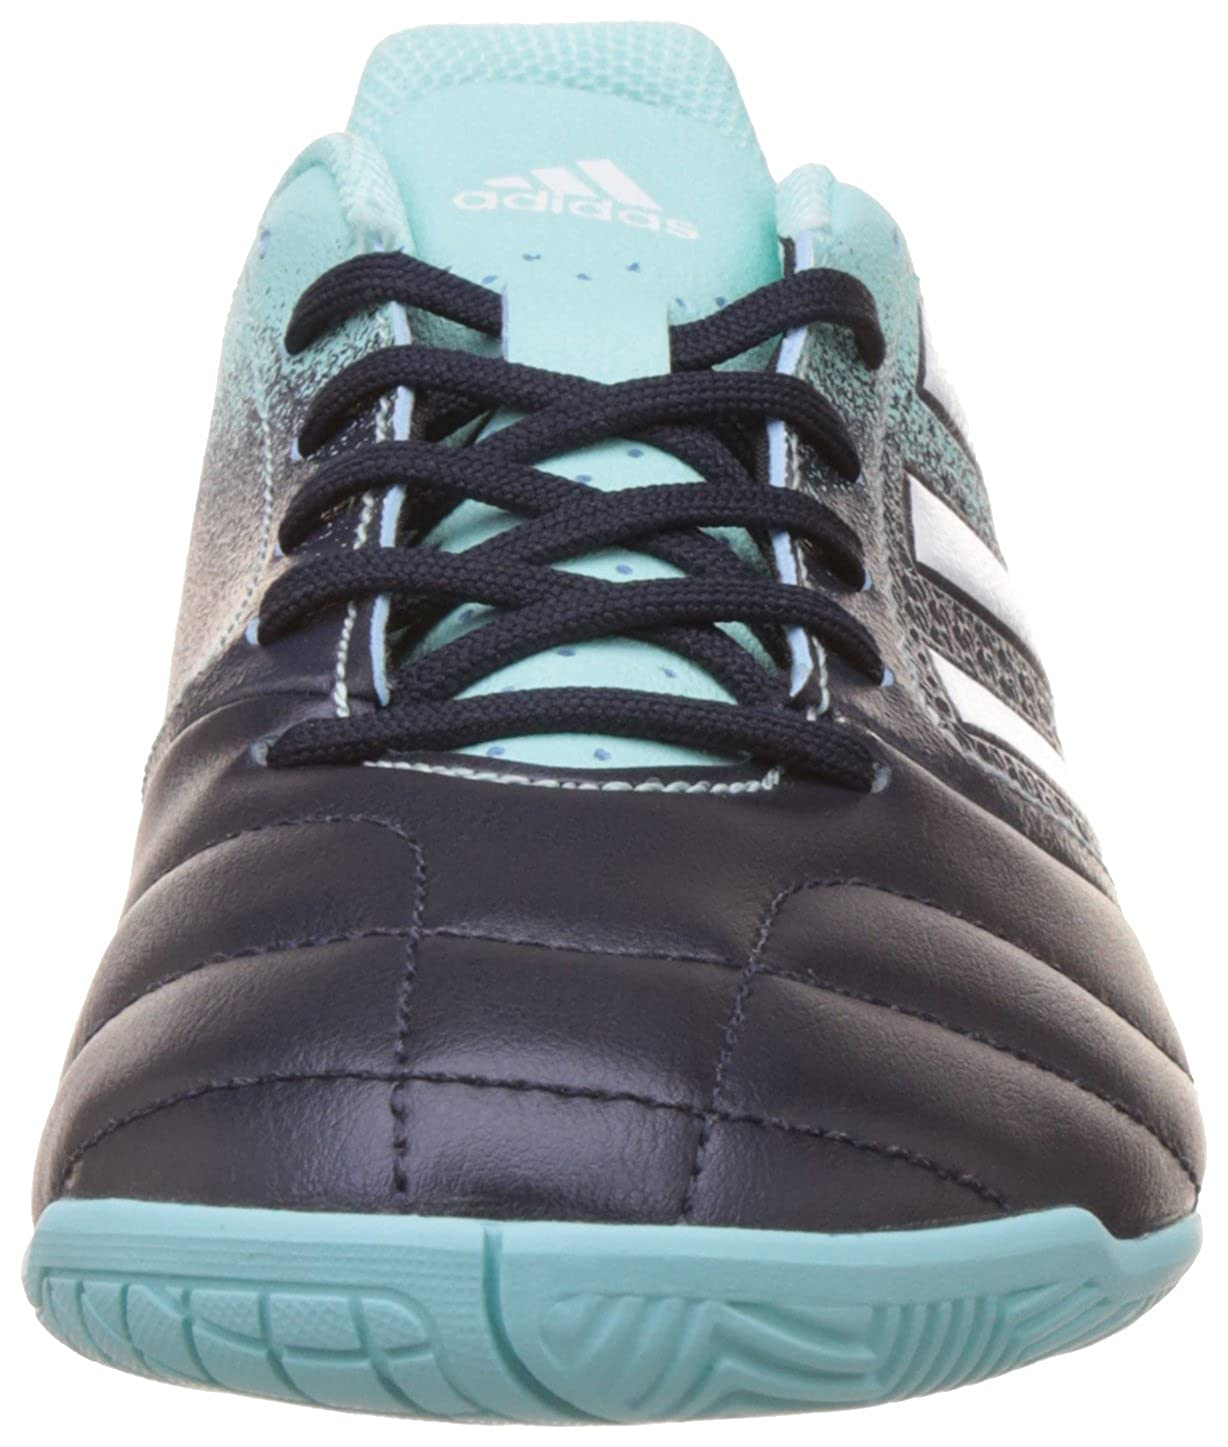 772c38a82 Adidas Men s Ace 17.4 in Eneaqu Ftwwht Legink Football Boots - 10 UK India  (44 1 2 EU)  Buy Online at Low Prices in India - Amazon.in